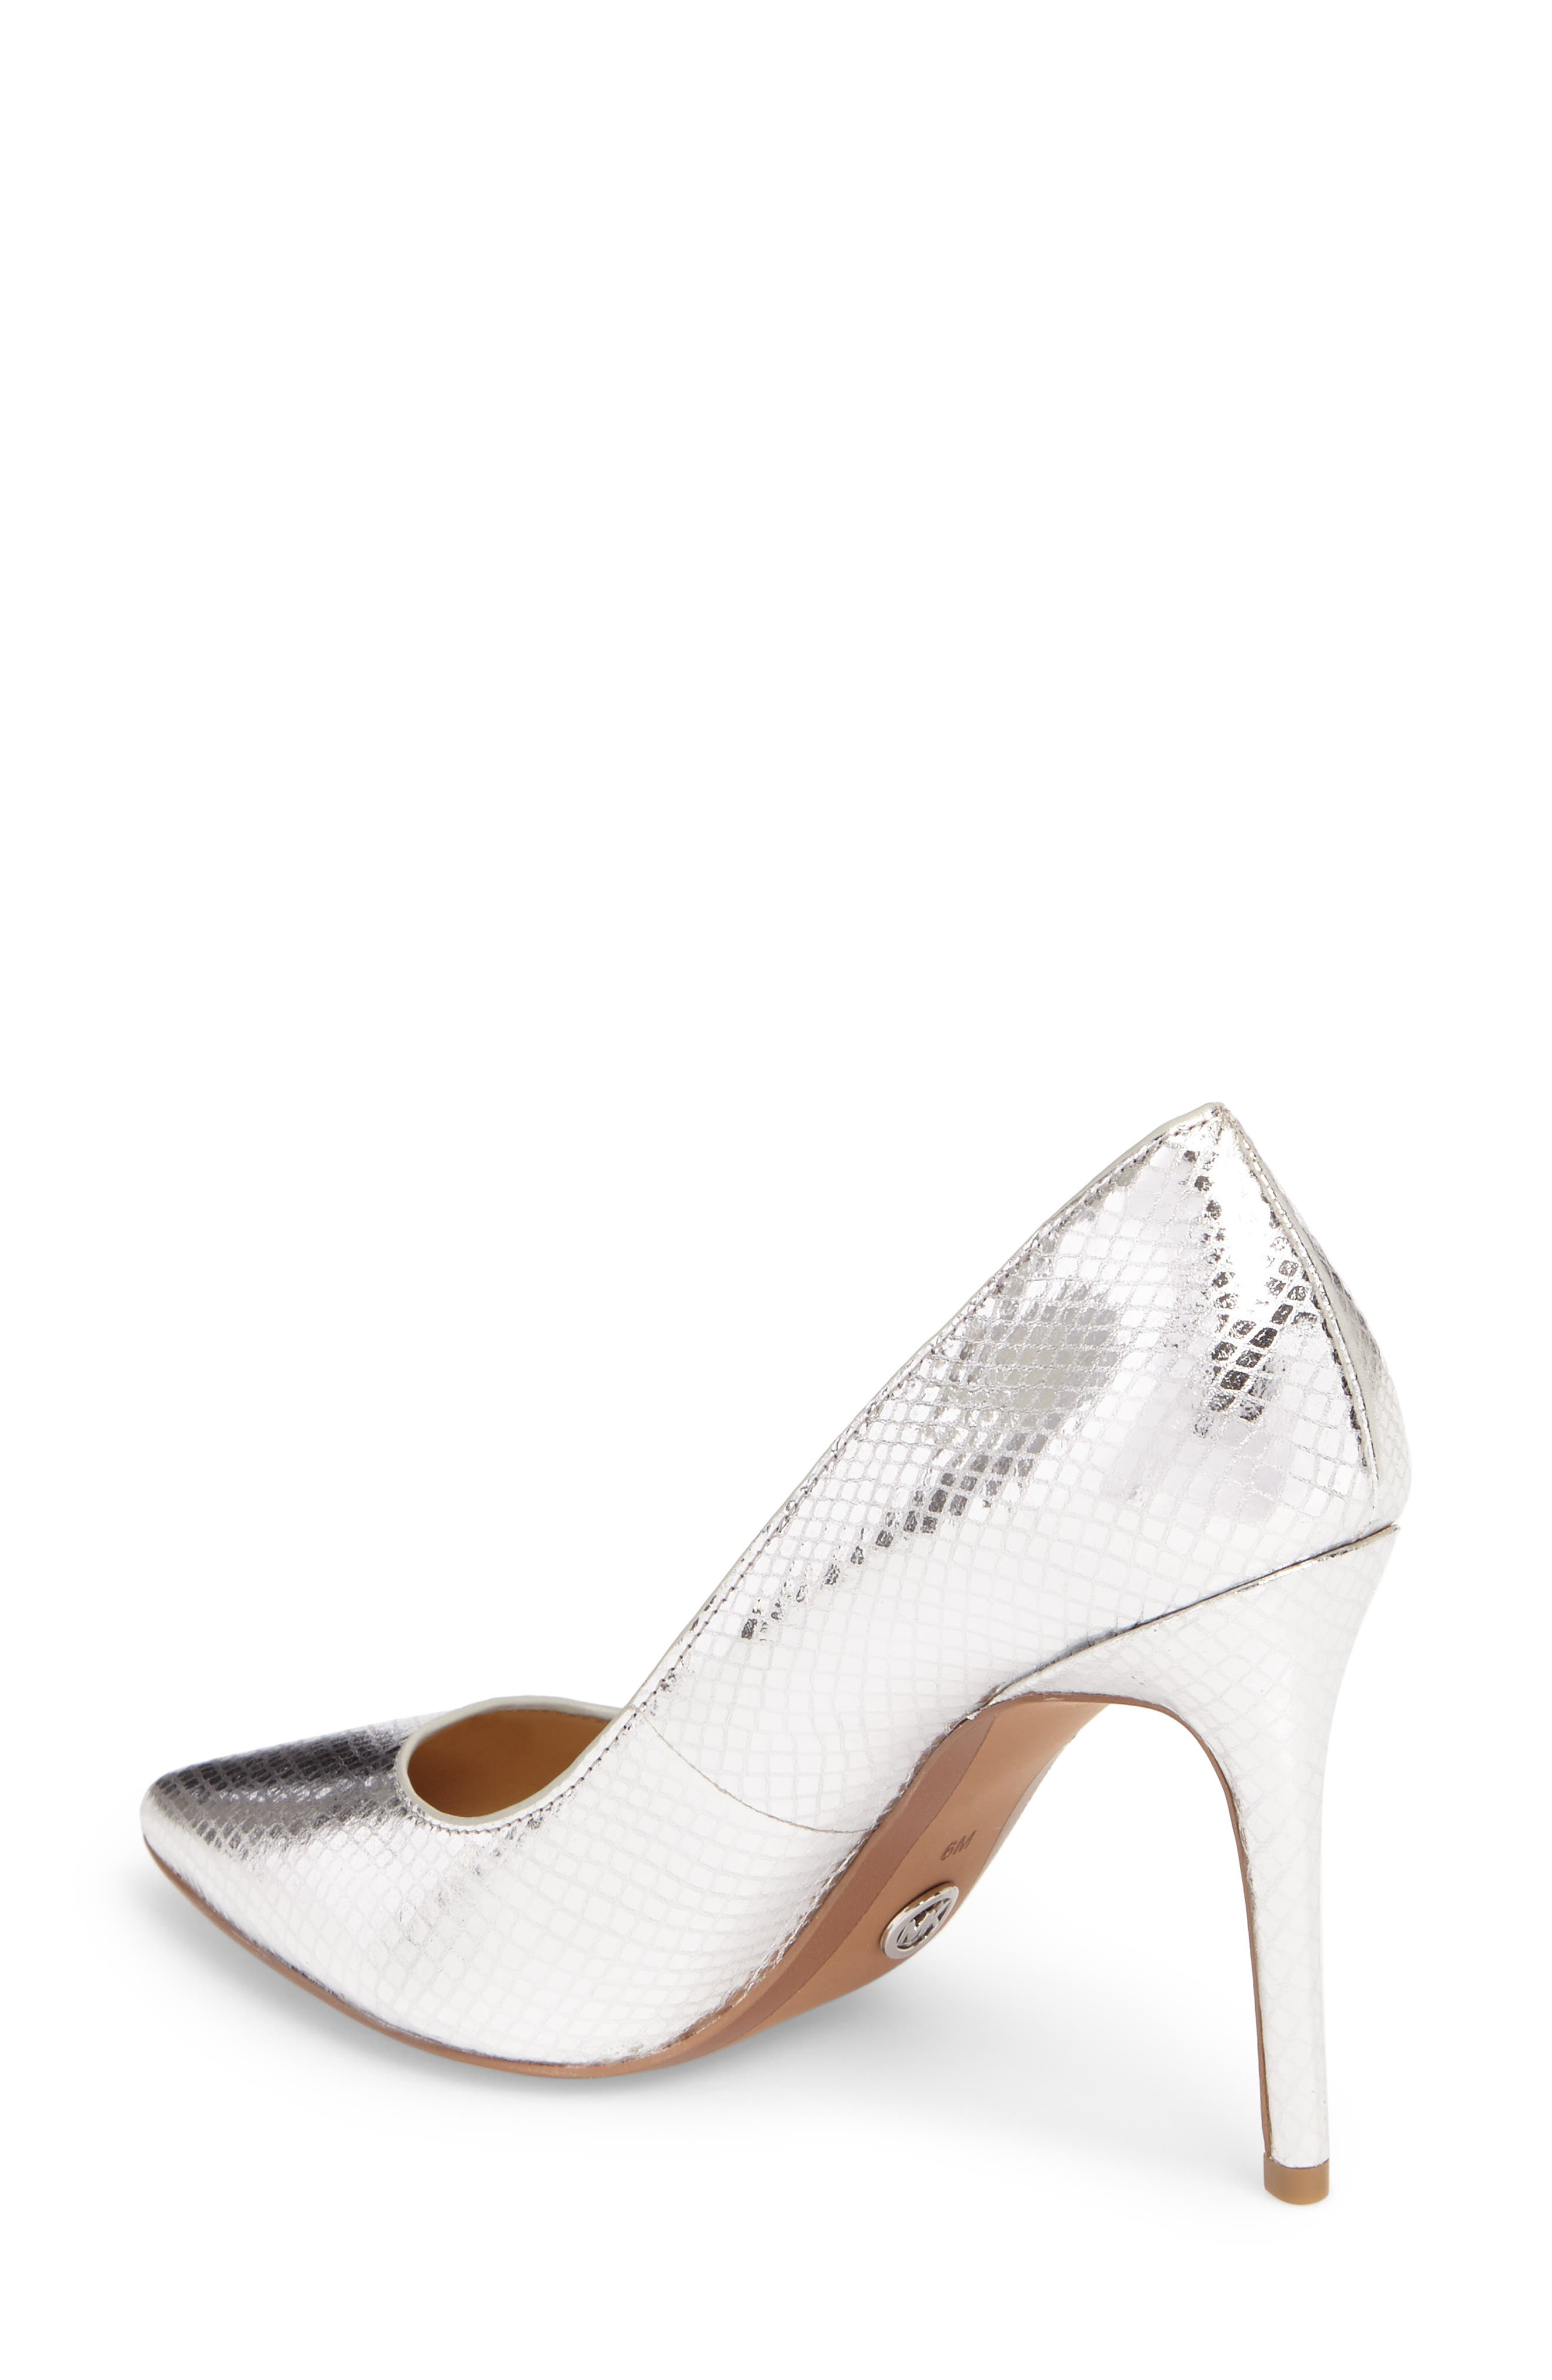 Claire Pointy Toe Pump,                             Alternate thumbnail 2, color,                             040